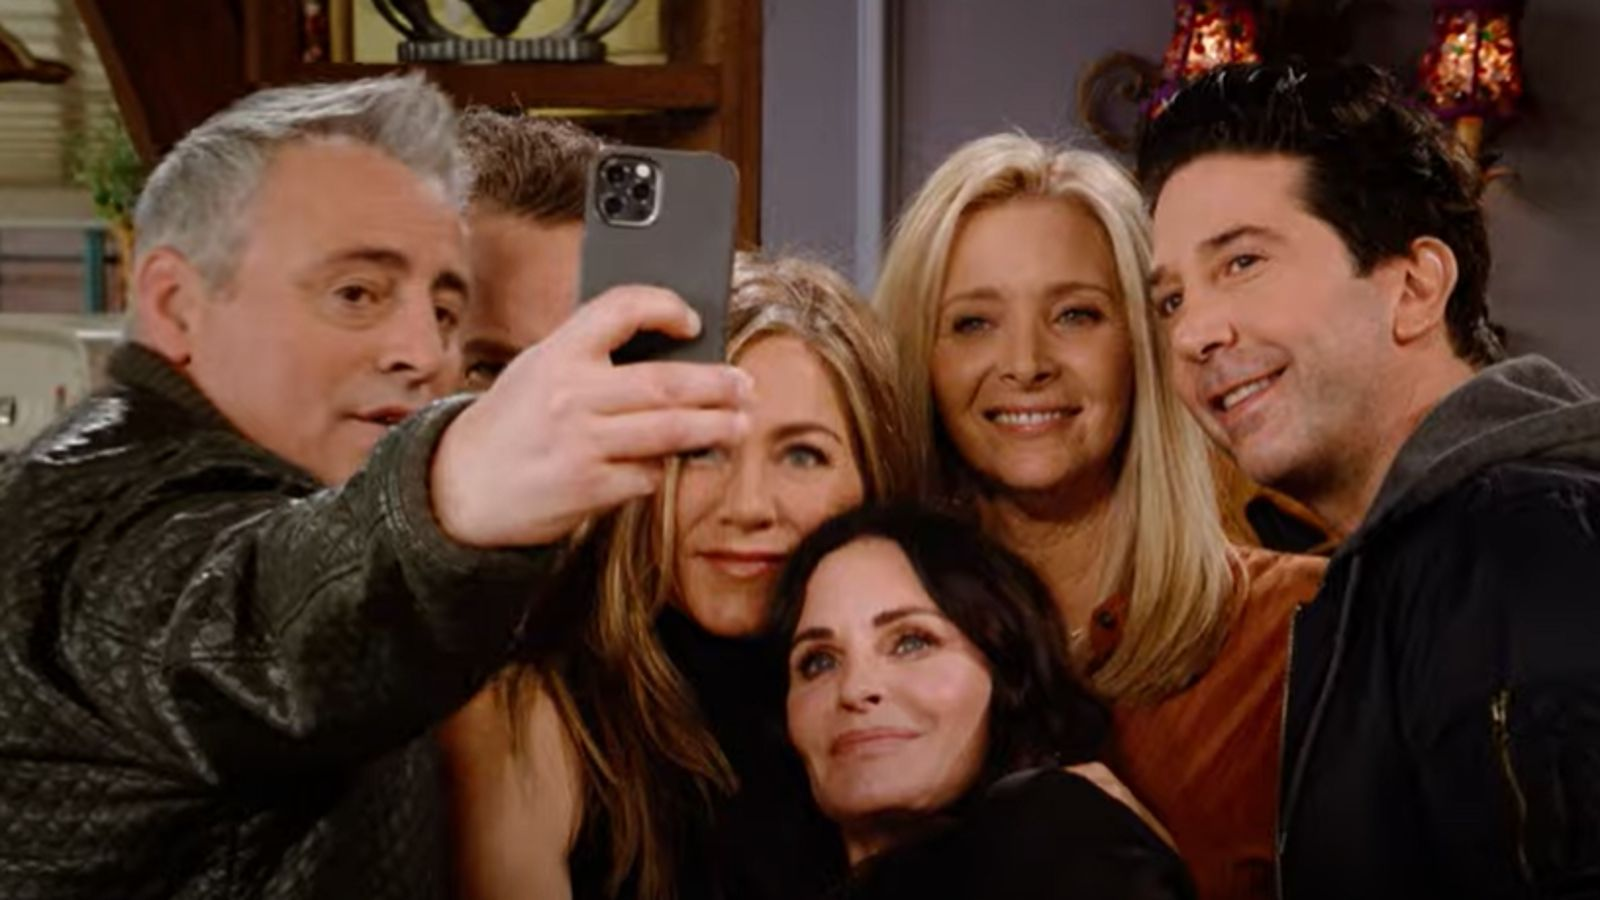 Full trailer for Friends reunion is released